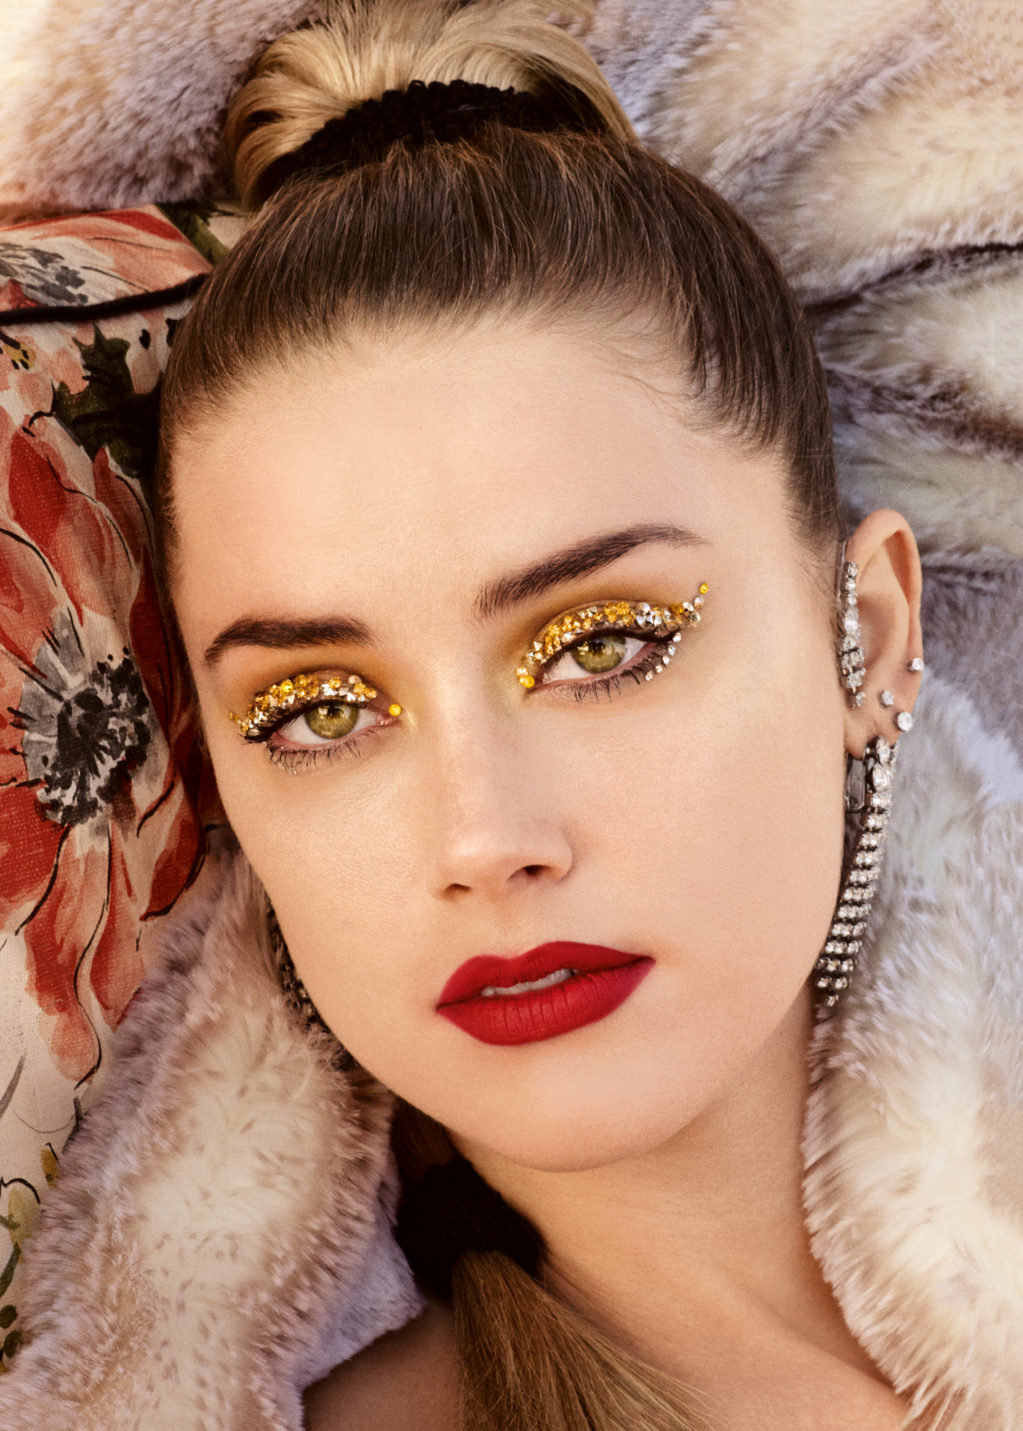 An artificial fur jacket, Norma Kamali; metallic earrings with rhinestones, New York Vintage. Tone cream Even Better Makeup Broad Spectrum SPF 15, Neutral; Eyebrow Gel Just Browsing Brush-On Styling Mousse, Blonde; lip liner Pop Matte Lip Color + Primer, Candied Apple Pop, all Clinique.